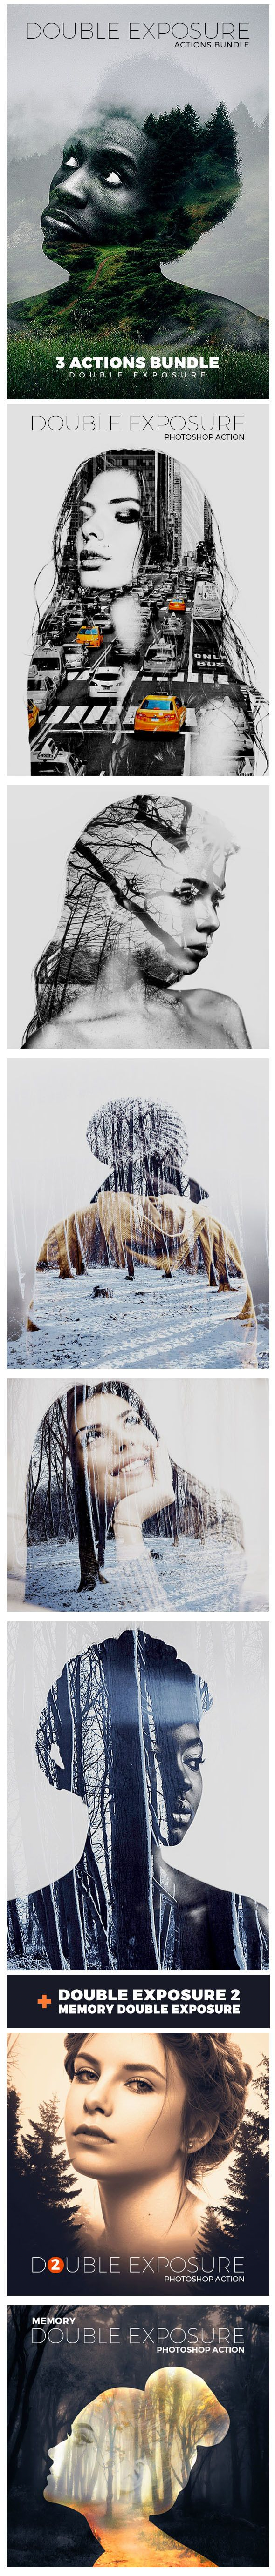 Double Exposure Photo Effect Photoshop Actions Bundle. Download here: http://graphicriver.net/item/double-exposure-actions-bundle/14887367?ref=ksioks